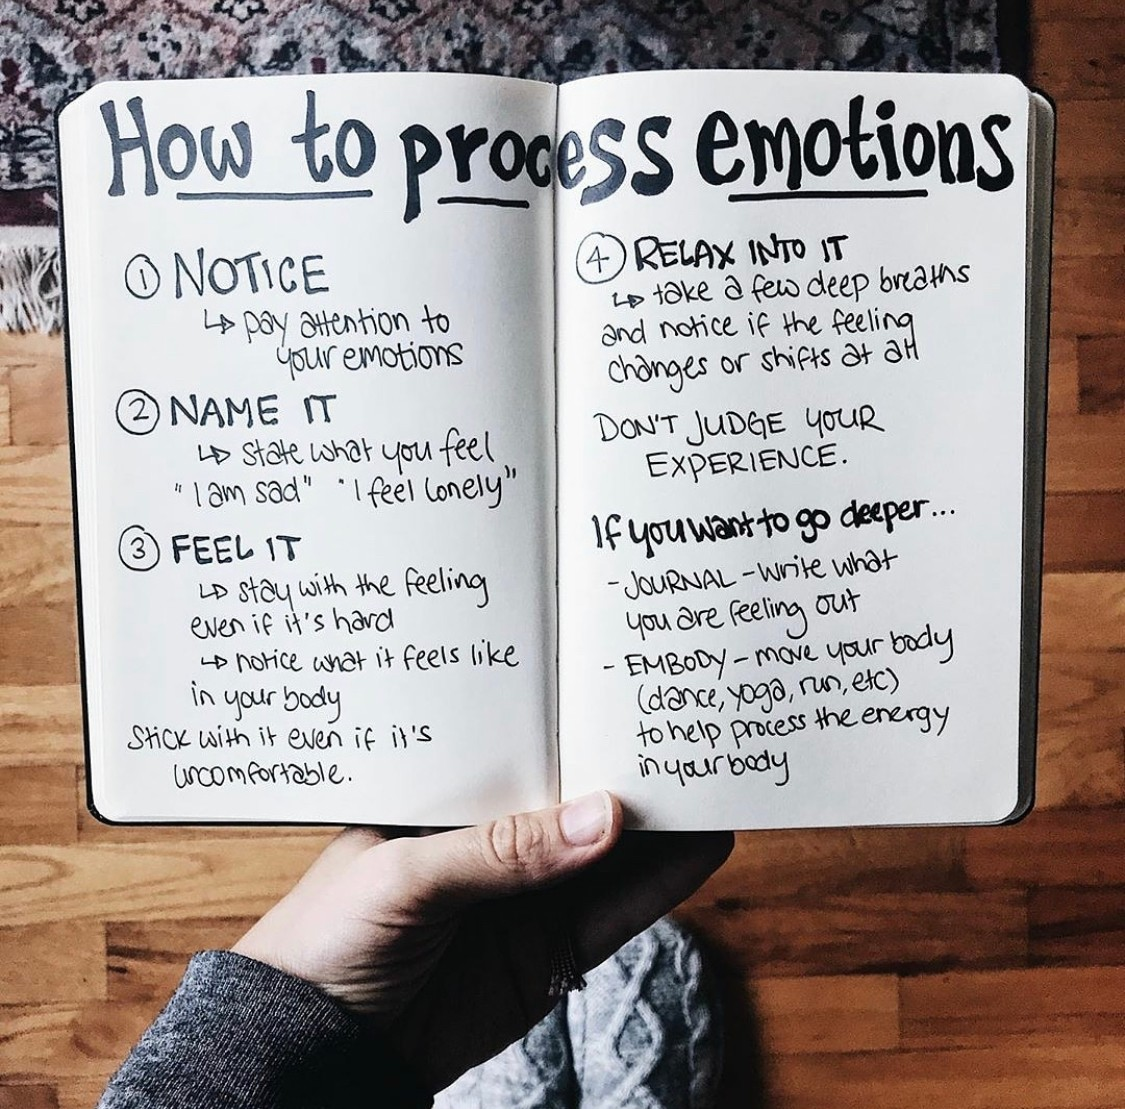 How to Process Emotions